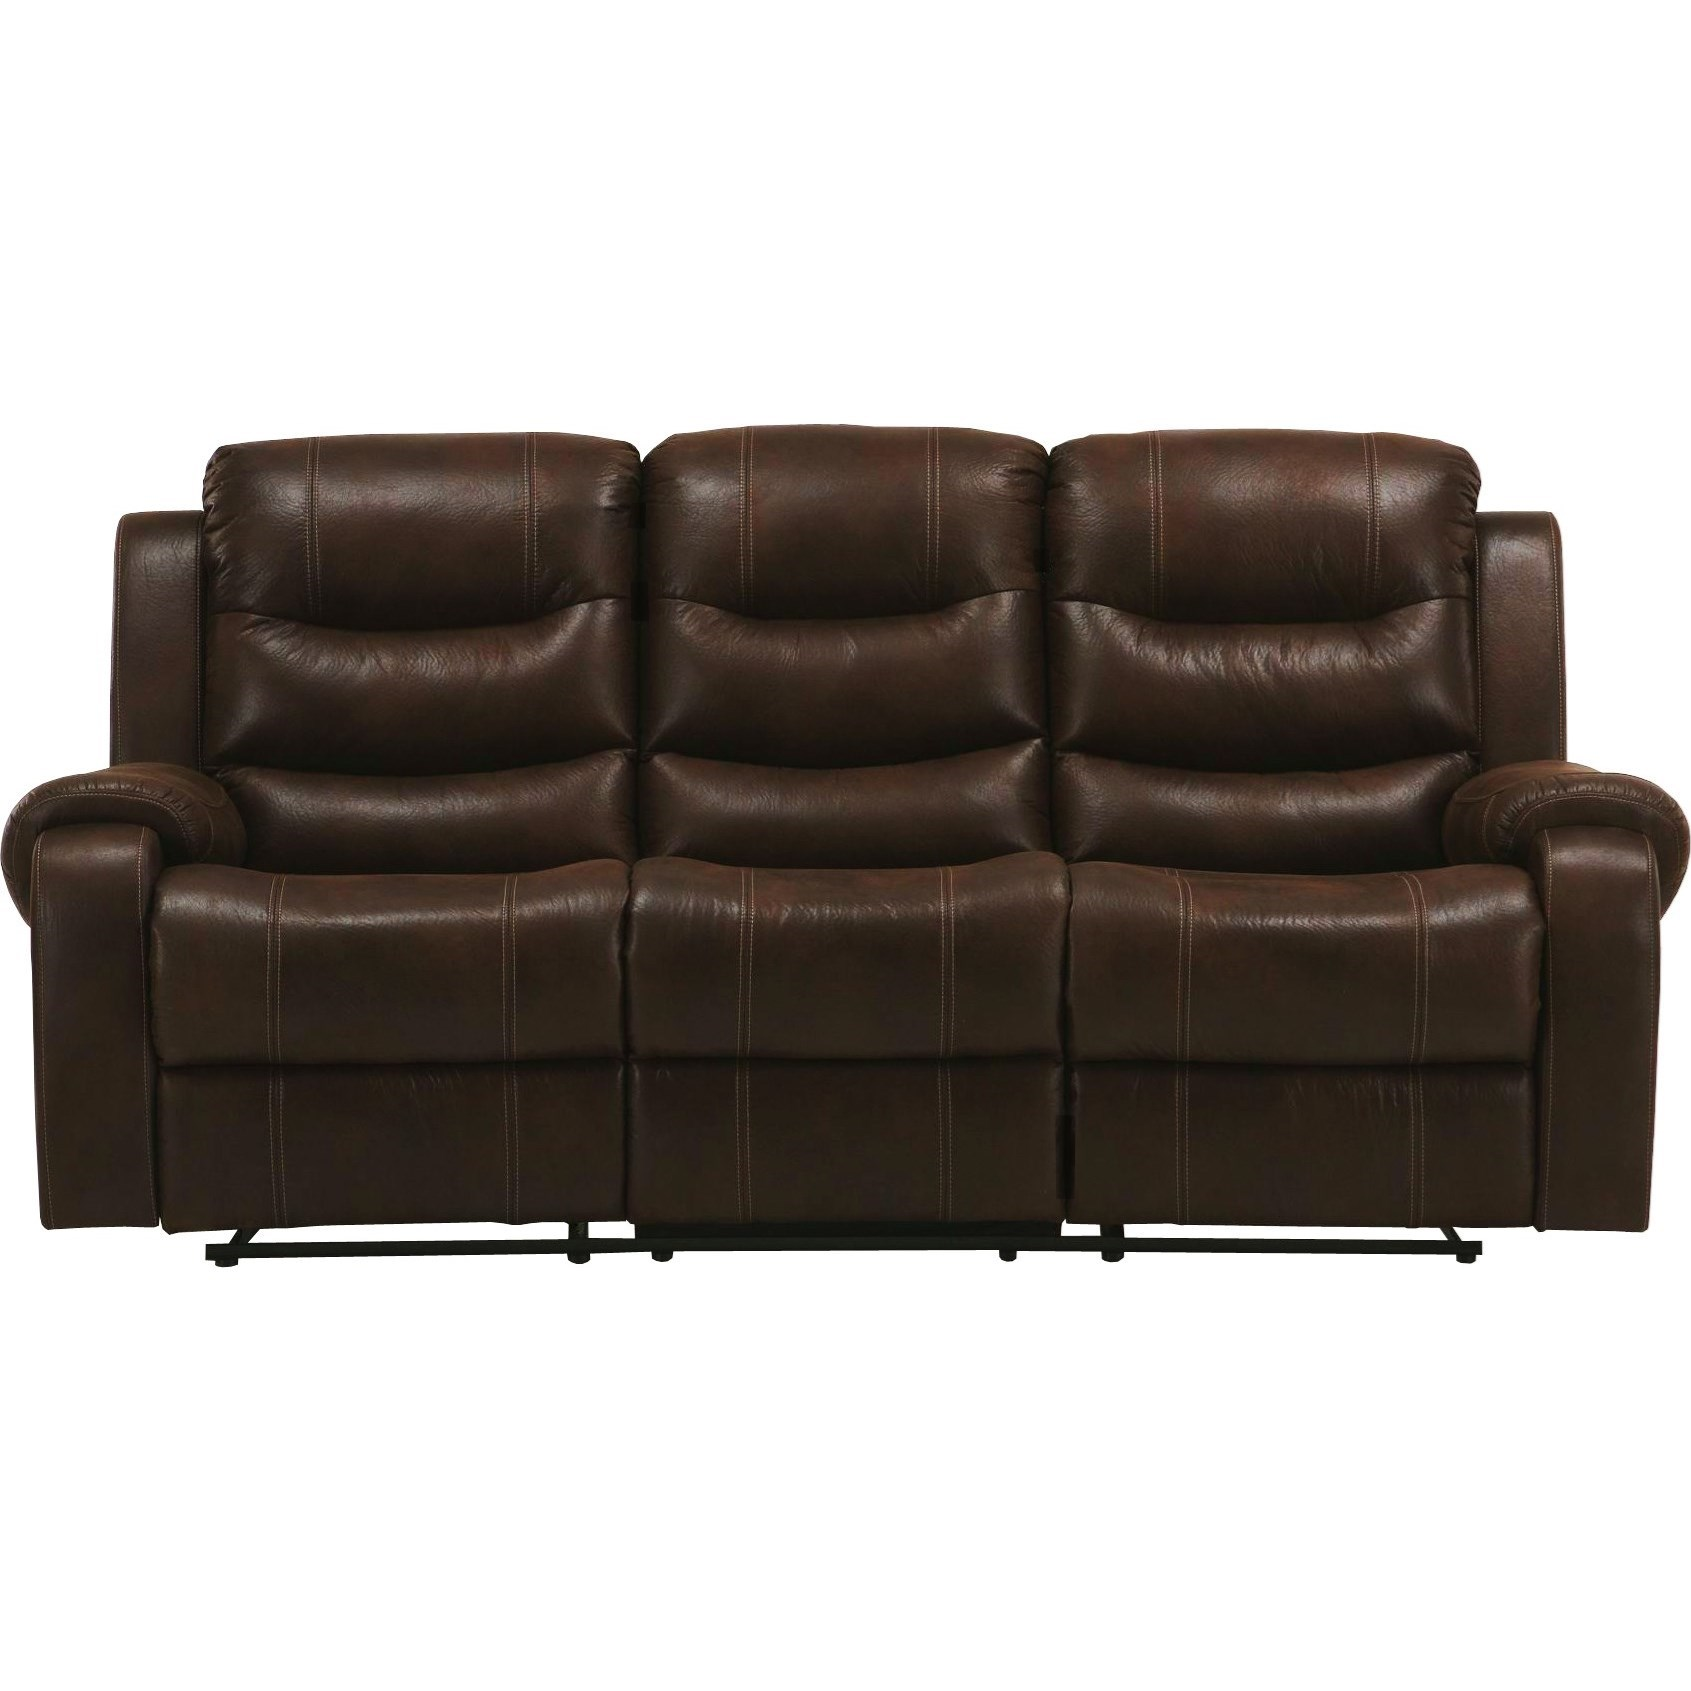 Parker Living Brahms Dual Reclining Sofa - Item Number: MBRA-832-CW